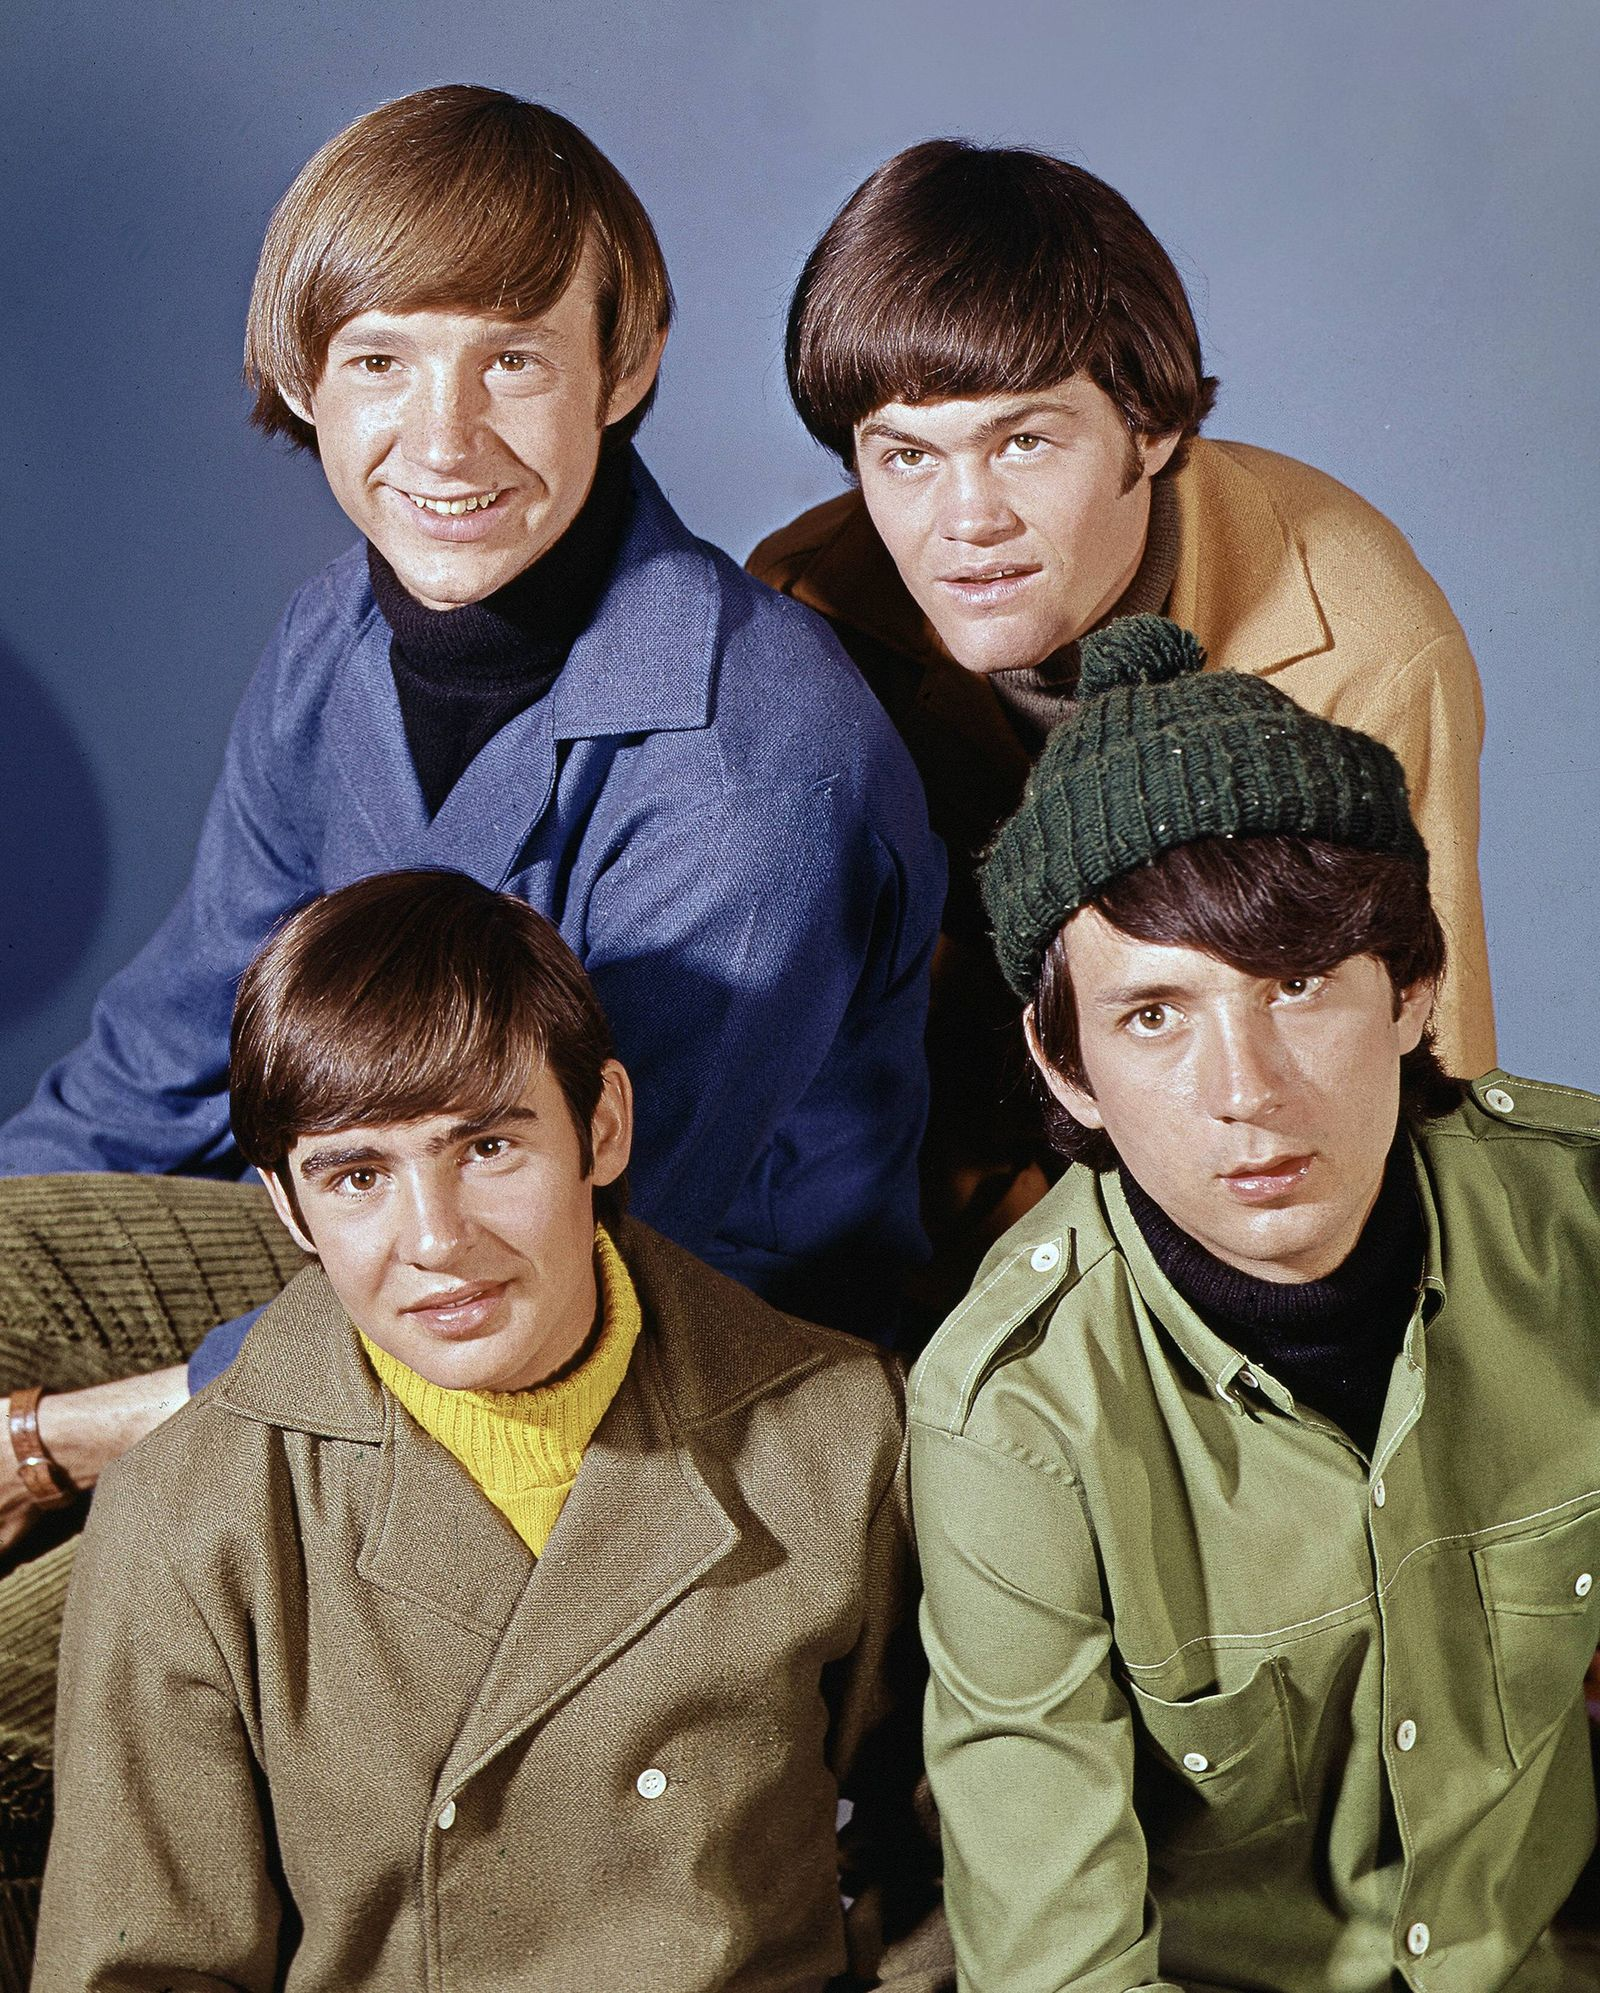 Publicity photo of The Monkees pop music group Peter Tork Mickey Dolenz Mike Nesmith and Davy Jo